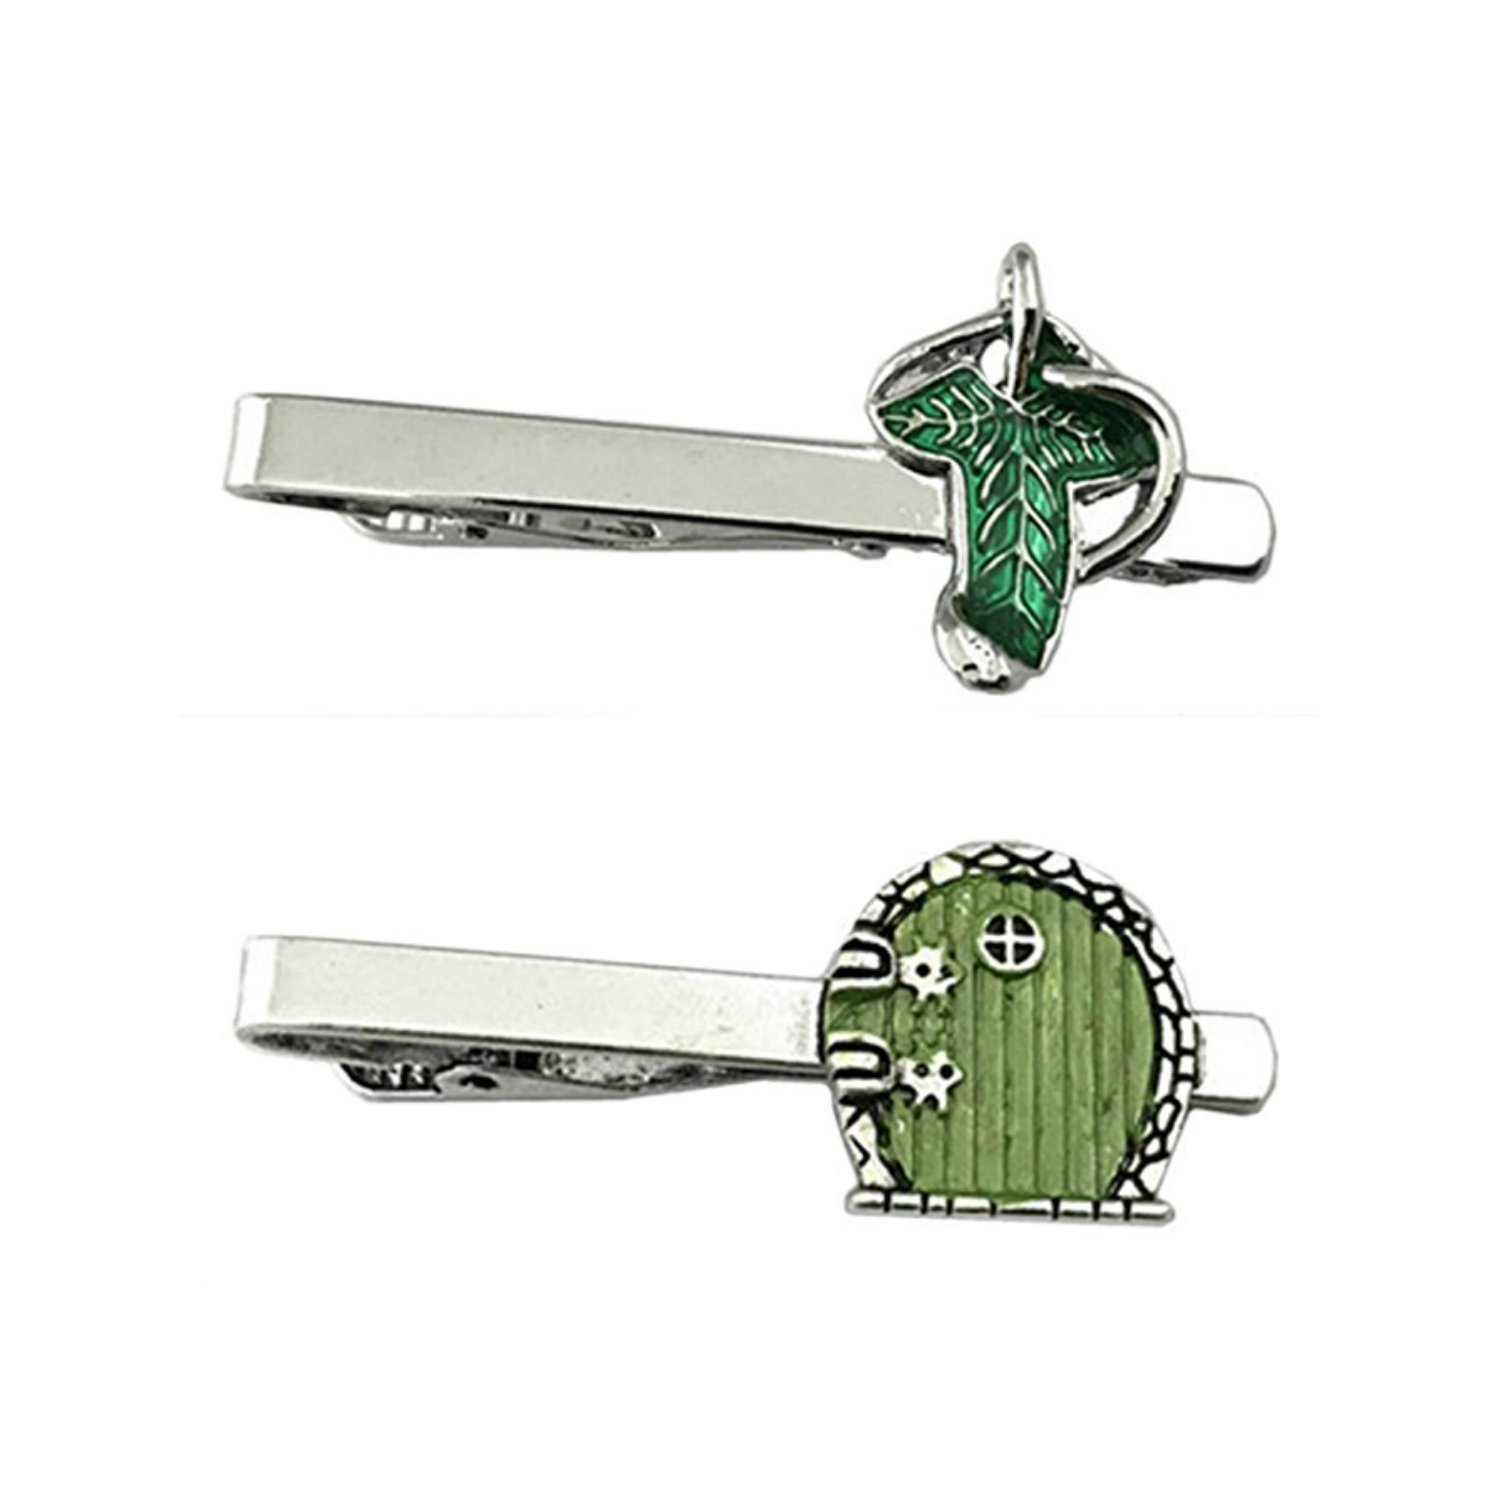 Outlander Lord of the Rings - Elven Leaf & Hobbit Door - Tiebar Tie Clasp Set of 2 Wedding Superhero Logo w/Gift Box